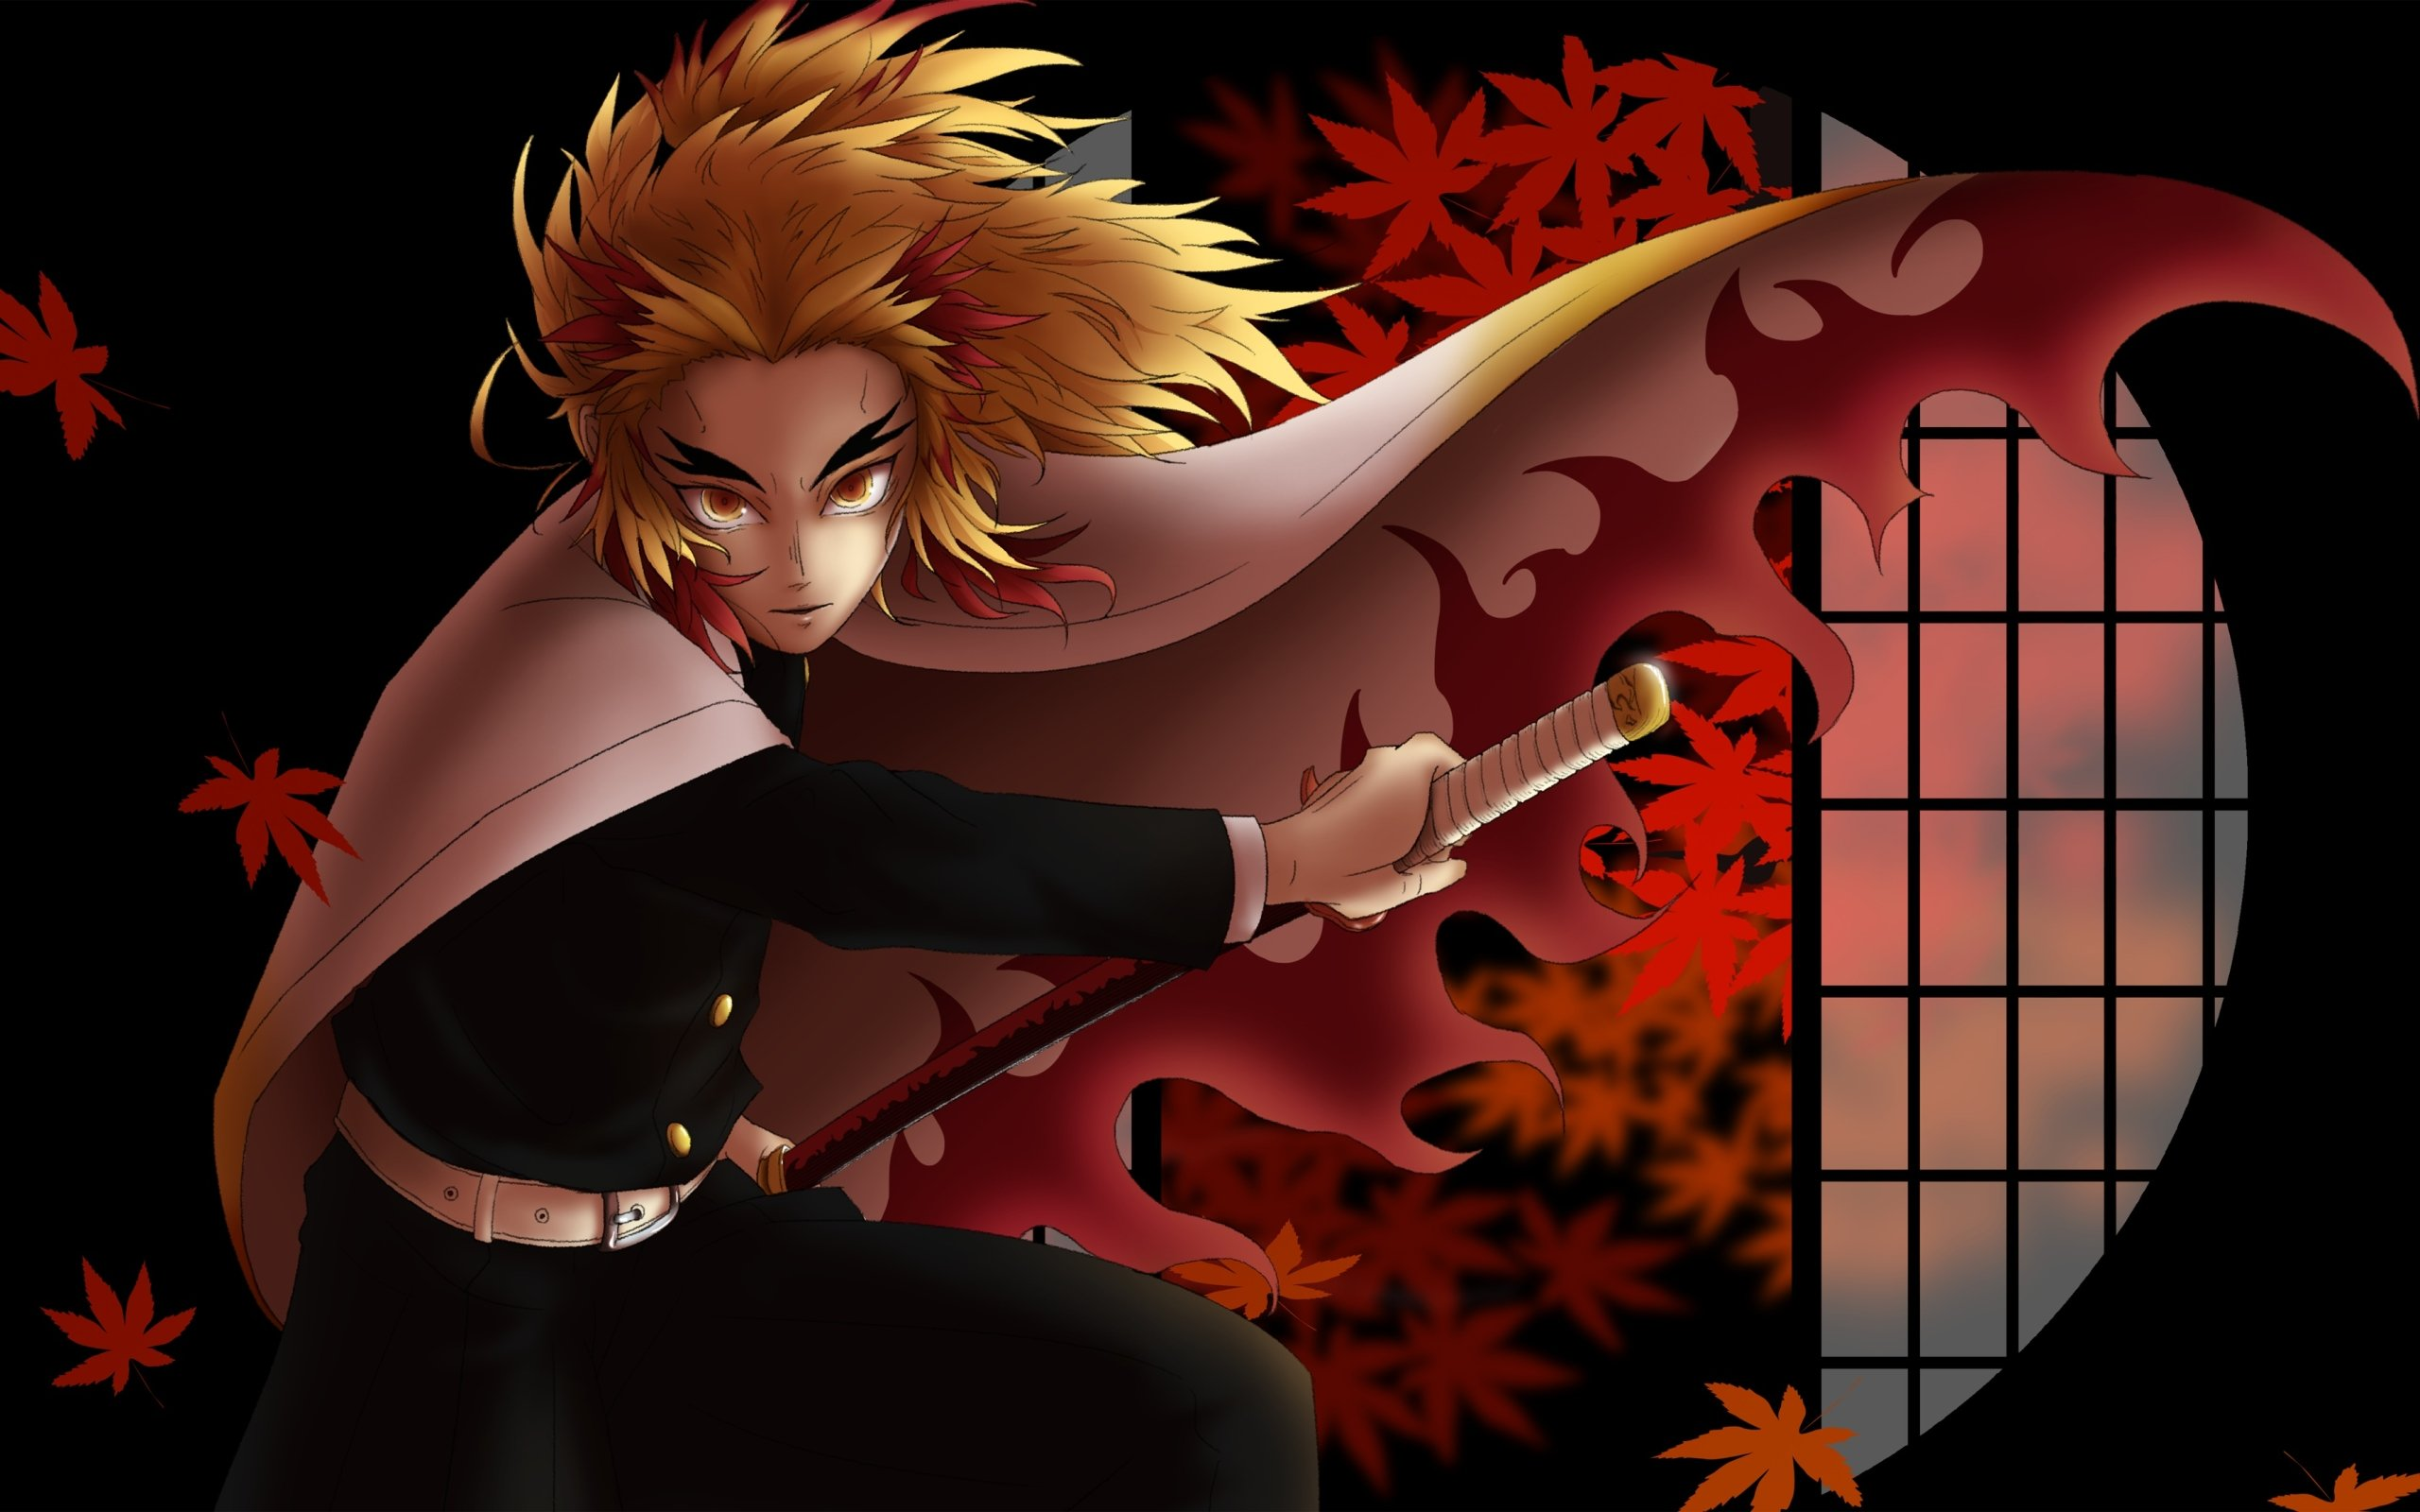 Wallpapers Rengoku Kyoujurou, Demon Slayer Kimetsu no Yaiba picture